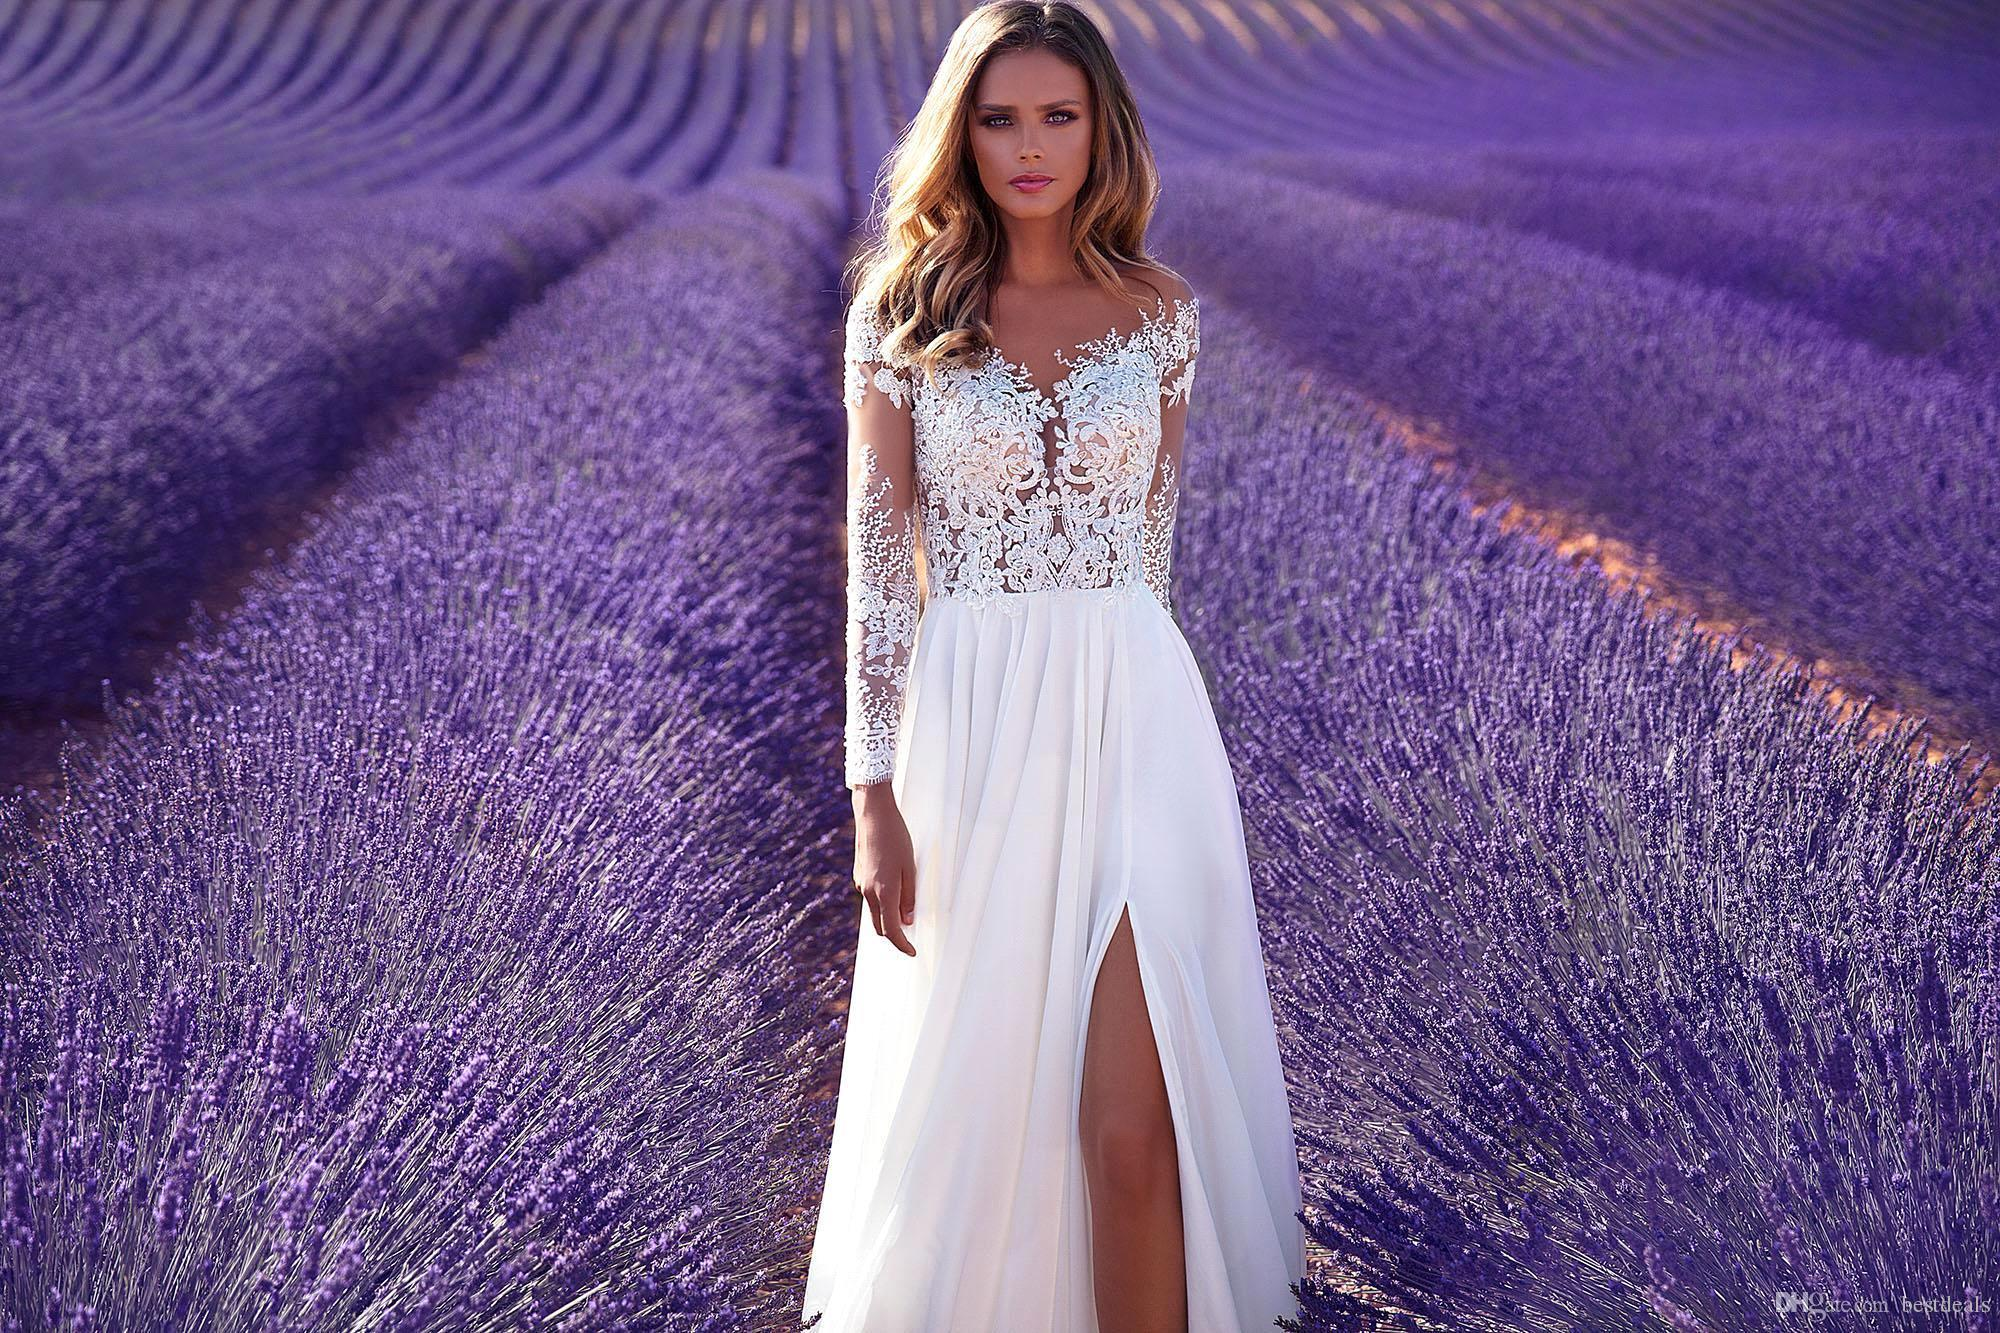 Milla Nova 2018 Long Sleeves Lace Wedding Dresses with High Split A Line Chiffon Floor Length Sheer Neck and Back Country Boho Bridal Gowns